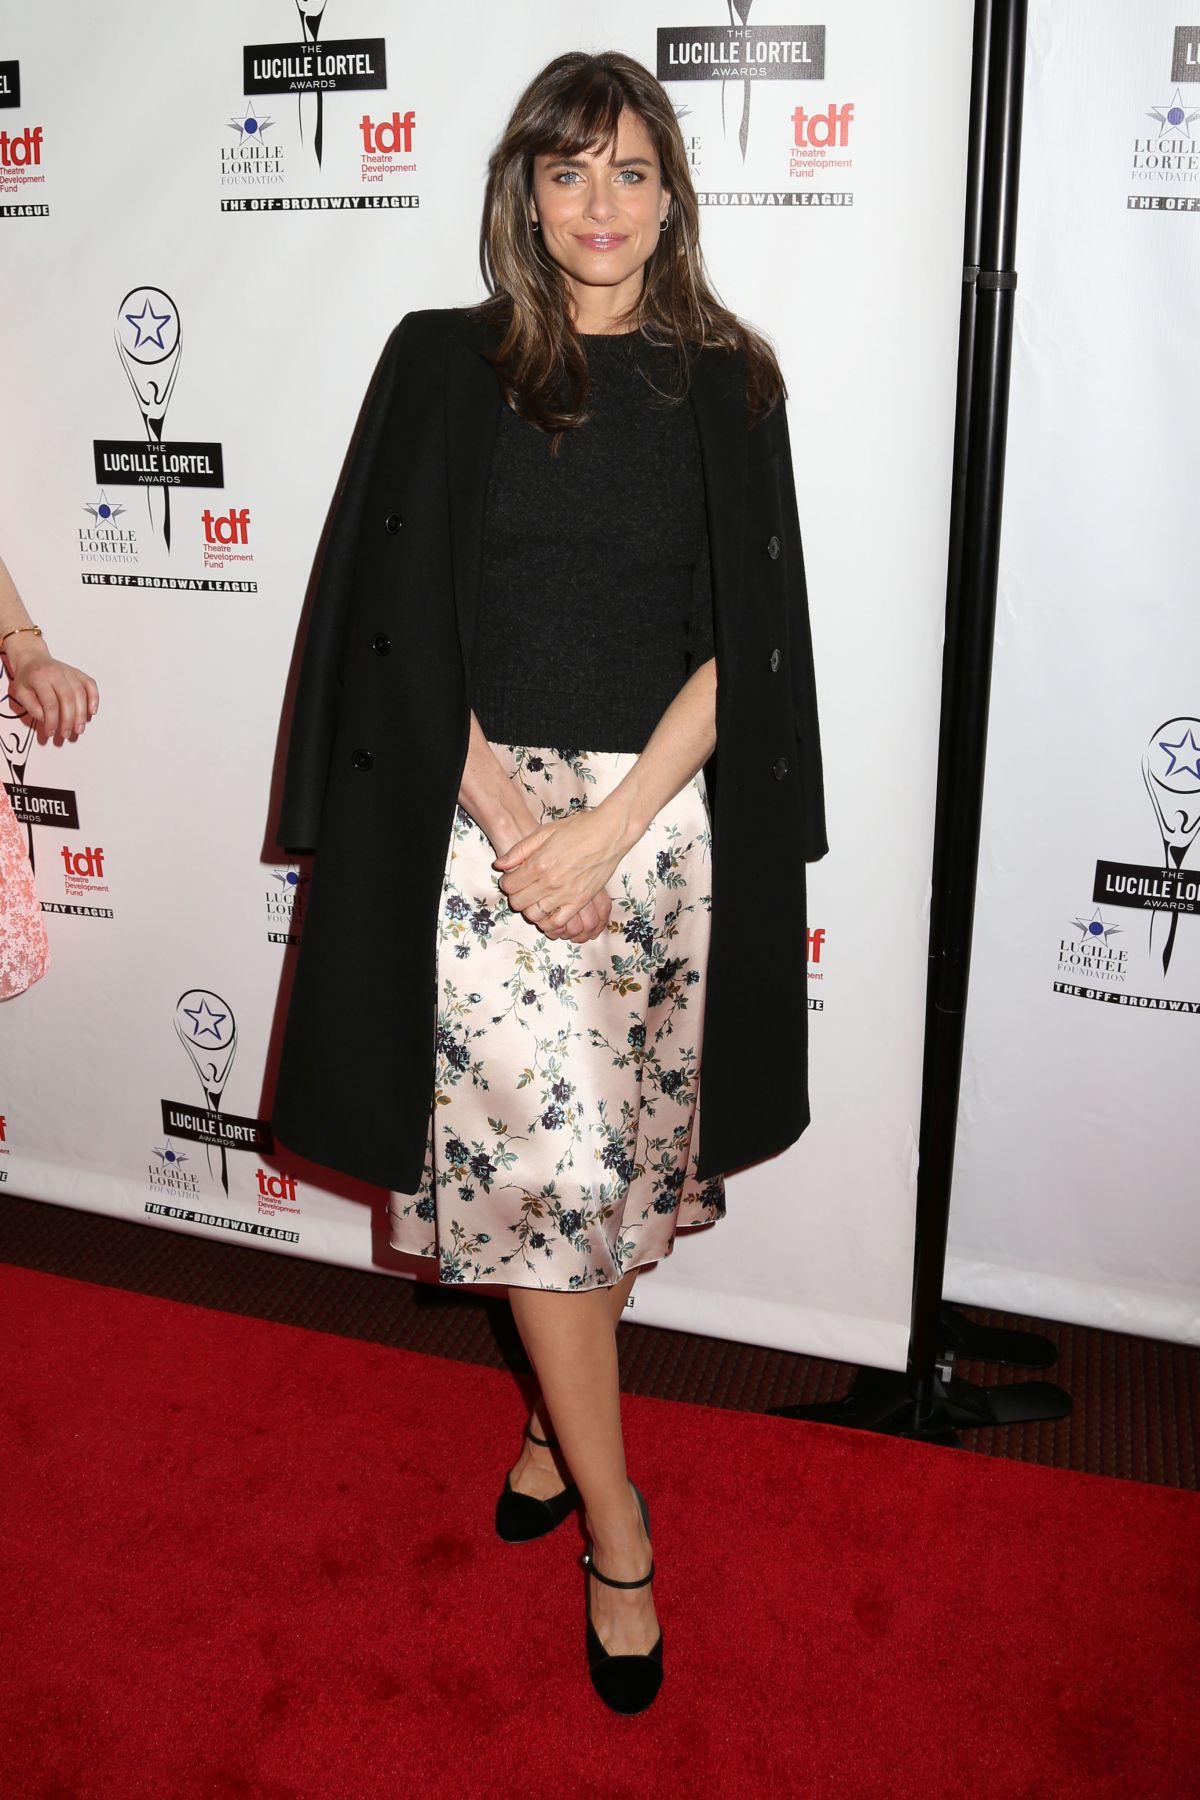 AMANDA PEET at Lucille Lortel Awards in New York